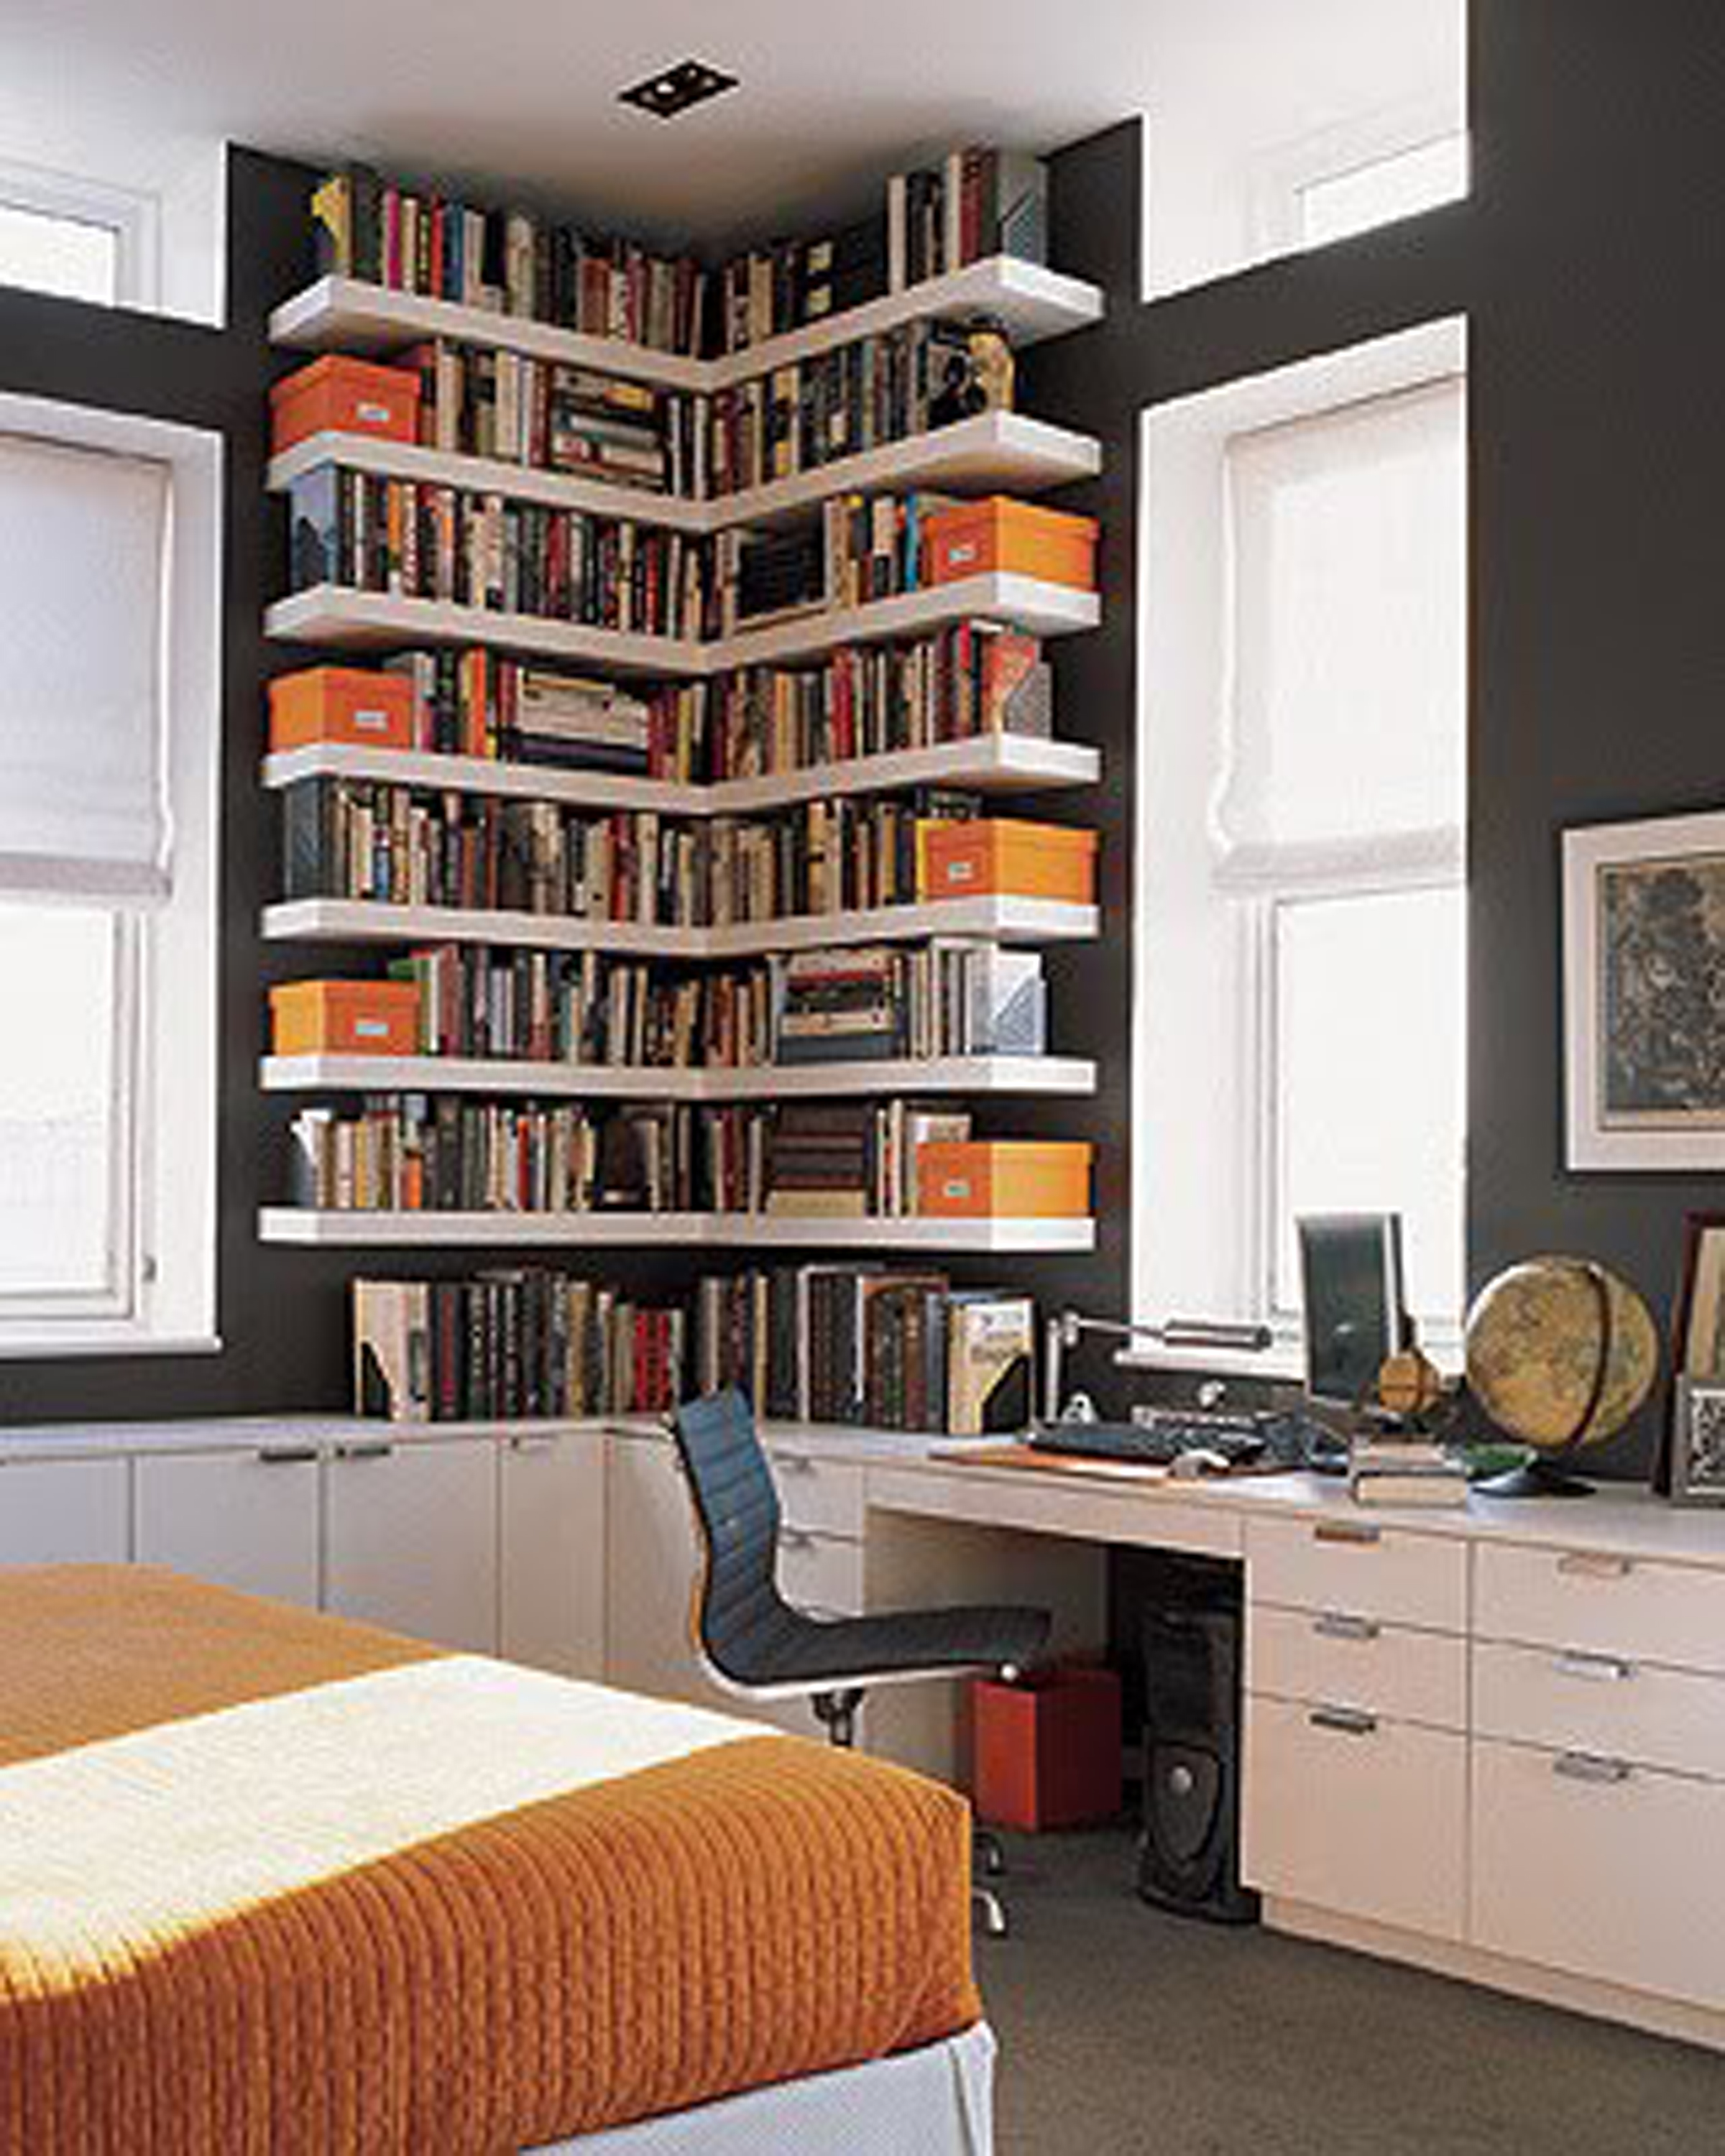 Hd wallpapers home library design ideas bookcases jhc.neboco.